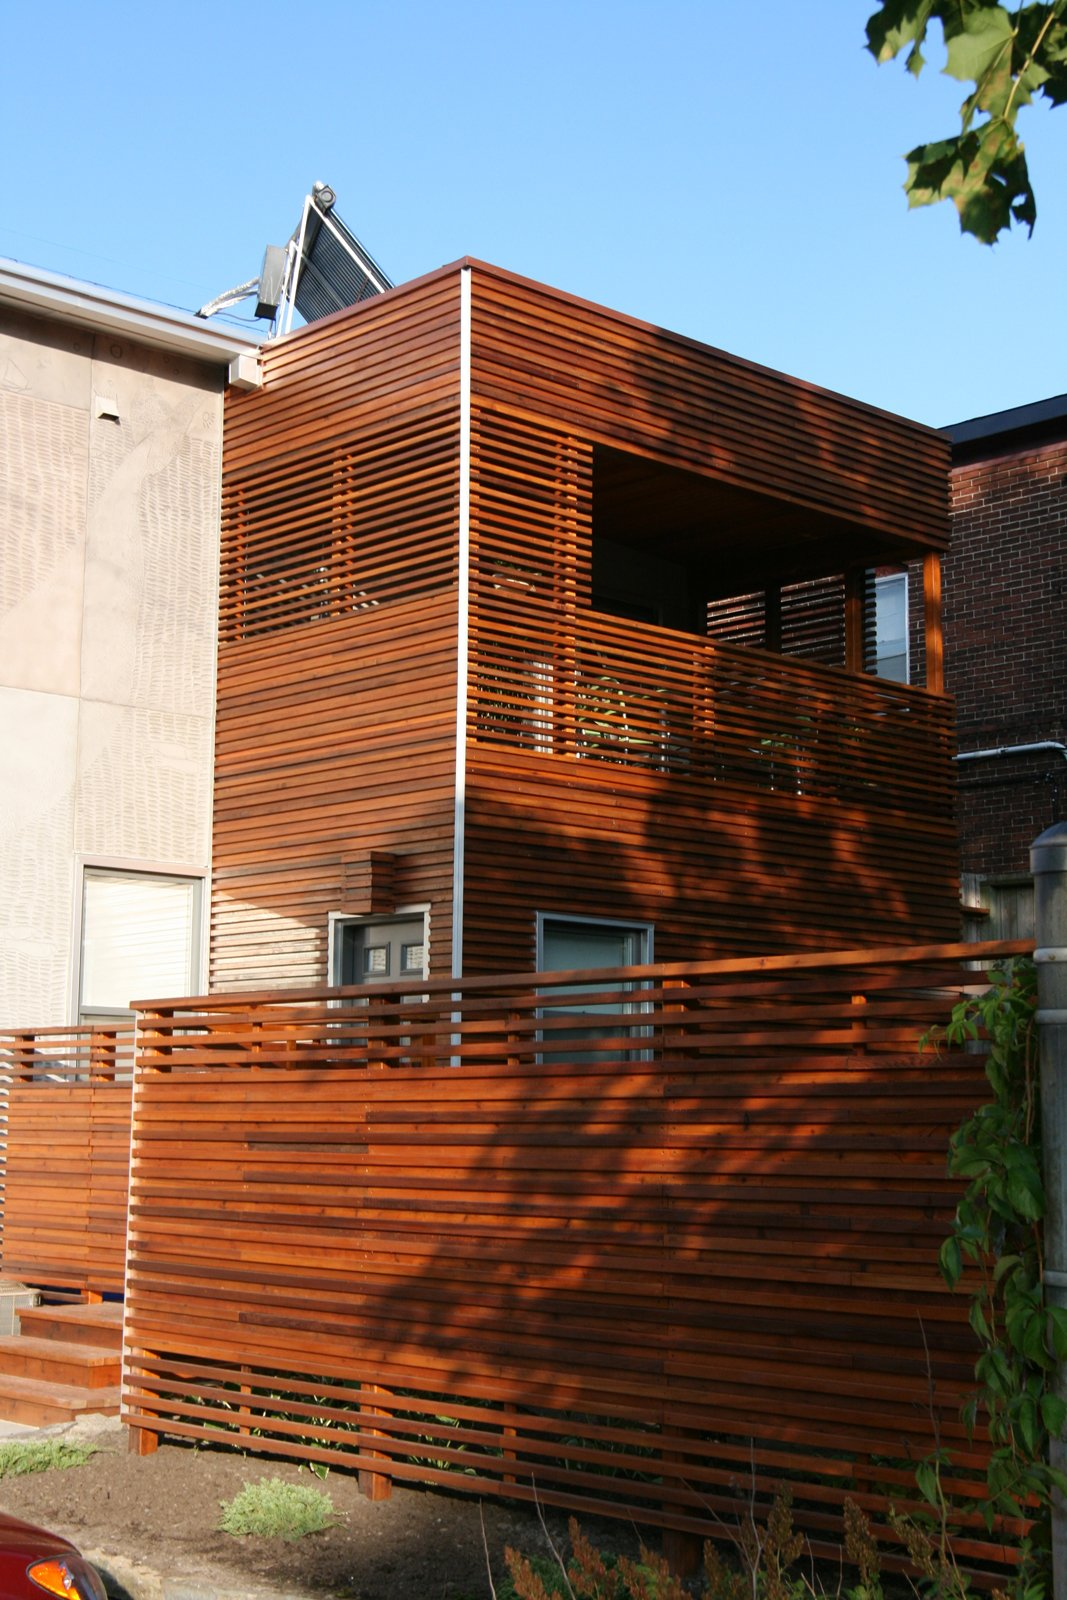 The architect used horizontal slats for privacy, but alternated them on the fence and second-floor deck to allow sunlight and breezes through. Solar panels atop the roof heat the water; a green roof is in the process of growing in. The project was awarded Green Renovation of the Year and Best Housing Detail at the 2009 Ottawa Housing Design Awards.  30+ Best Modern Fences by William Lamb from Engraved House